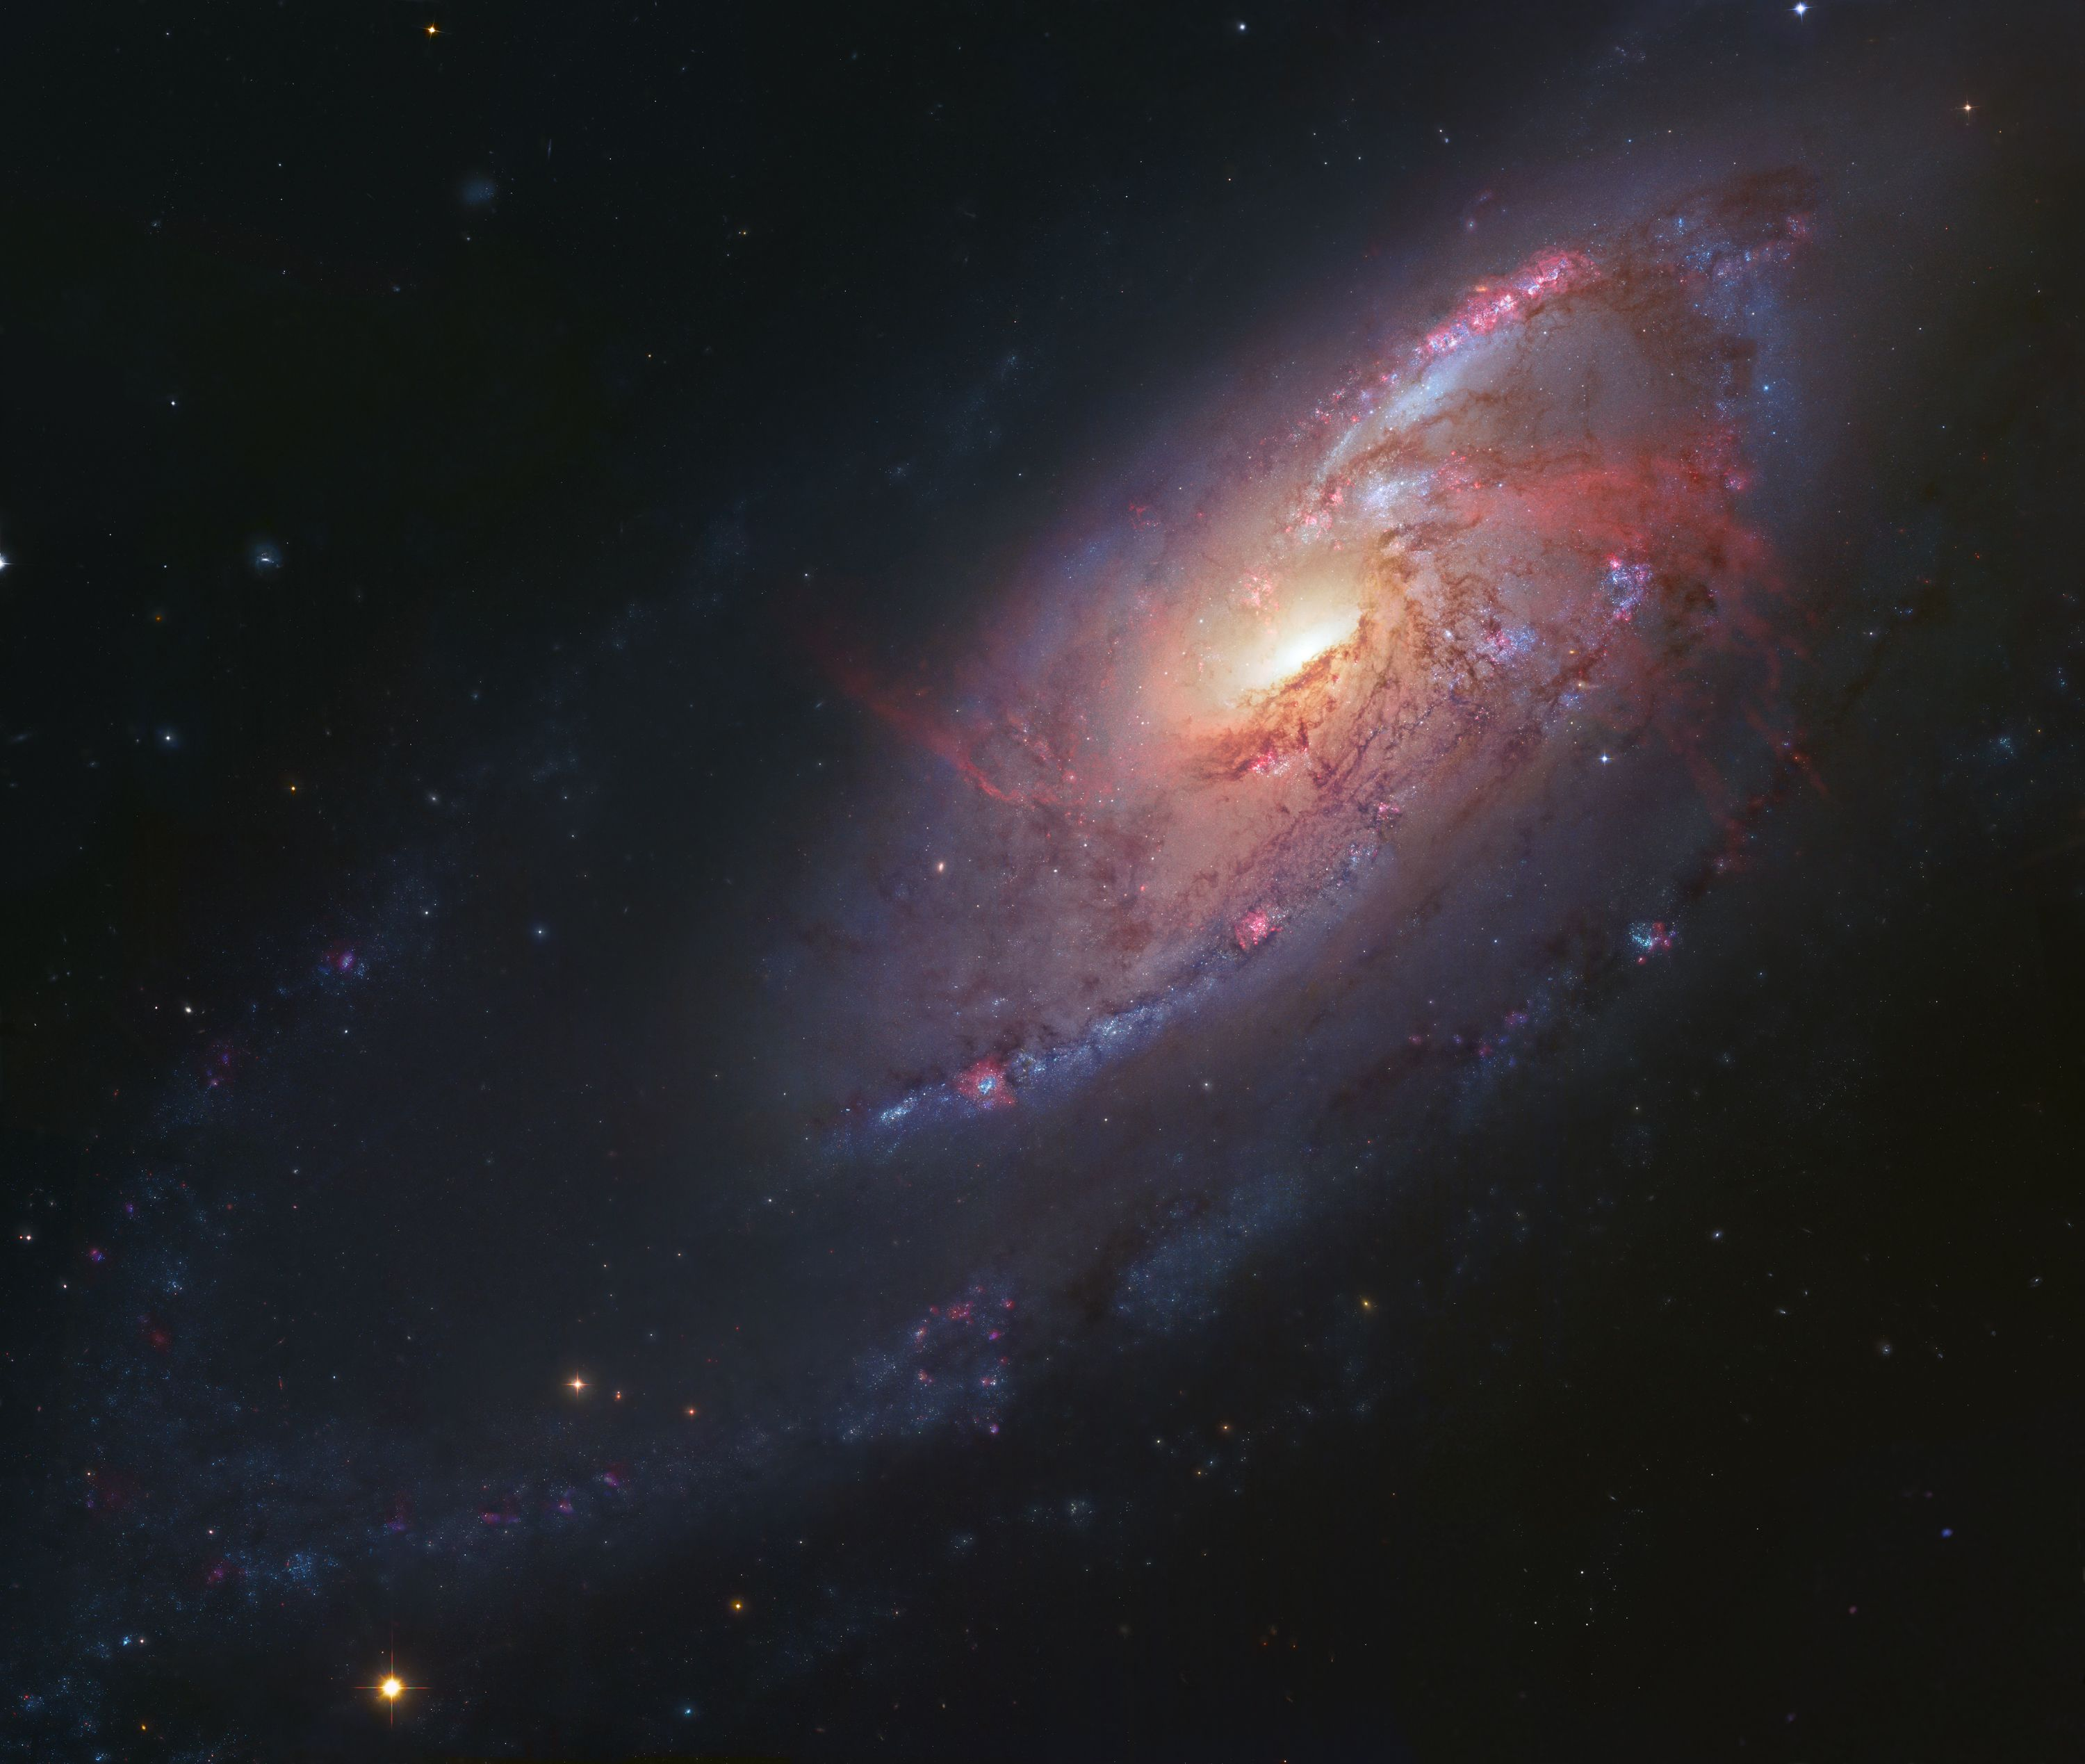 Data from various Hubble instruments and ground-based astrophotography are mashed up in a stunning view of spiral galaxy M106